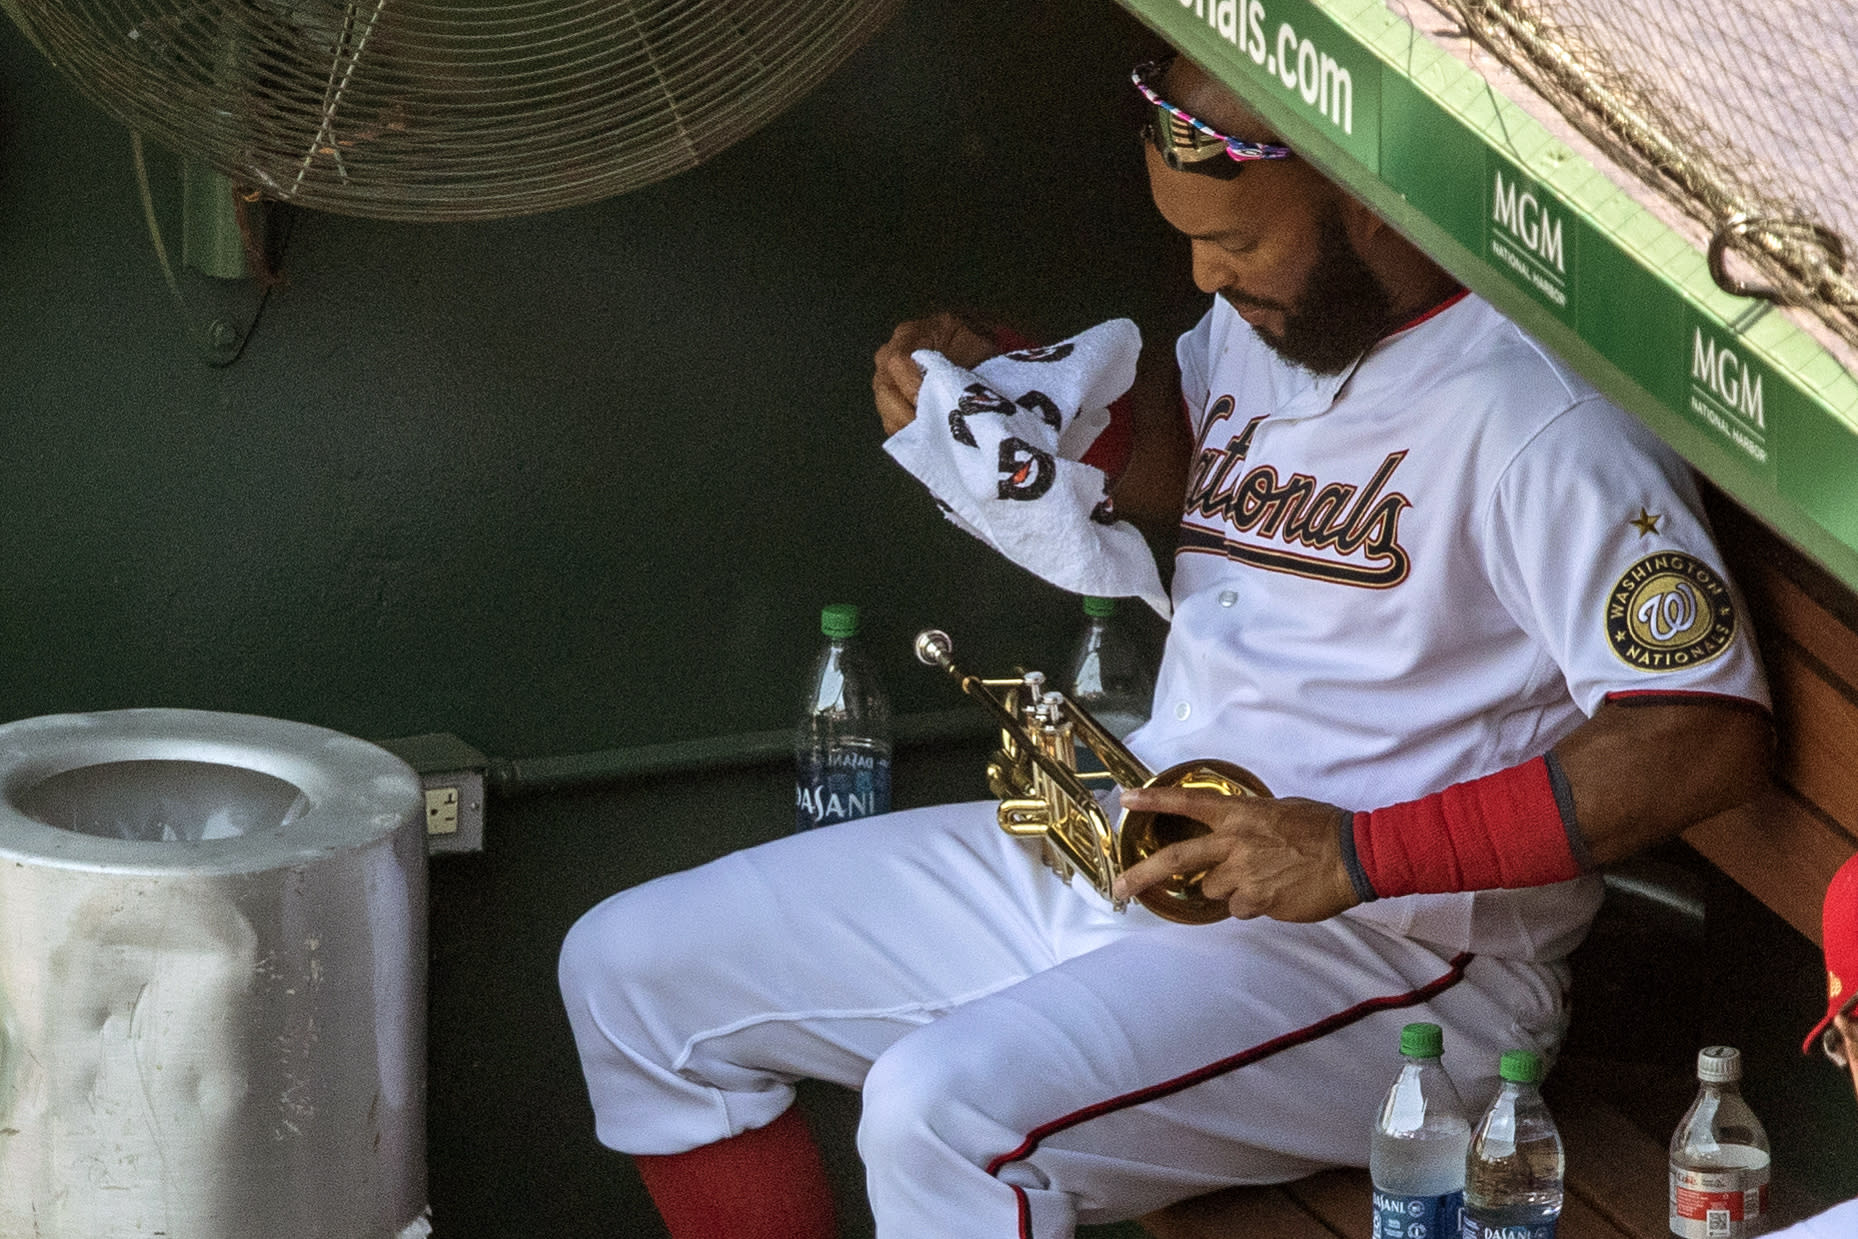 Washington Nationals' Emilio Bonifacio wipes his trumpet in the dugout during a baseball game against the New York Yankees at Nationals Park, Sunday, July 26, 2020, in Washington. (AP Photo/Alex Brandon)